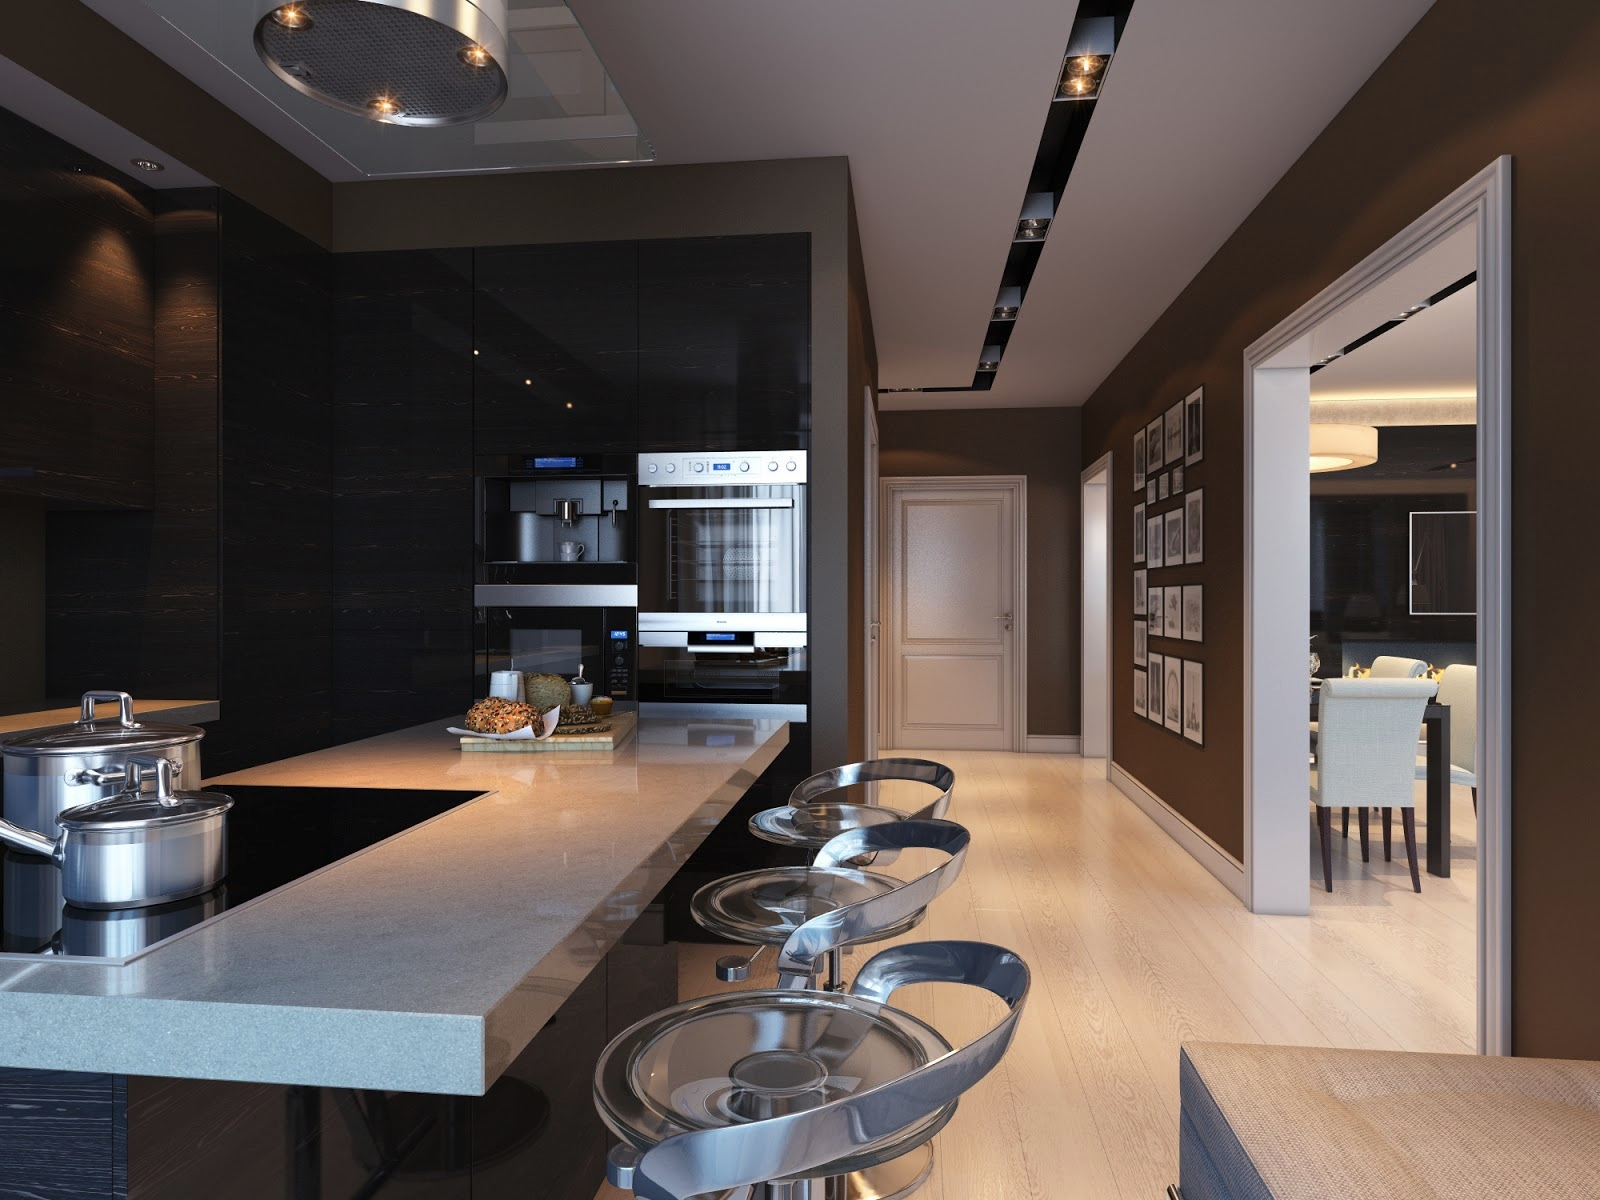 Black kitchen interior design